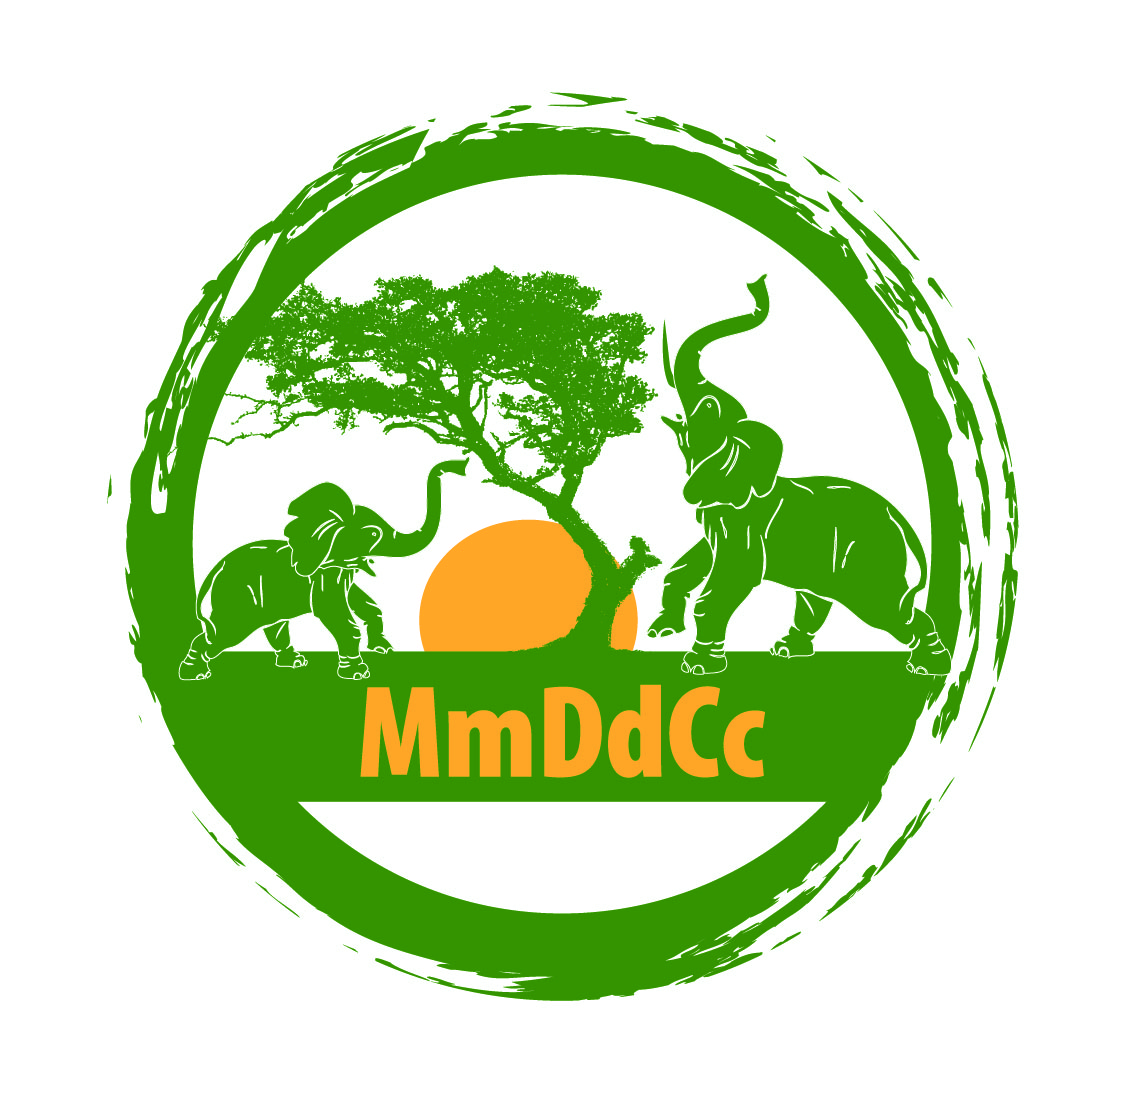 MmDdCc: Mathye And Ditlou Dynasty Corporate Consultants